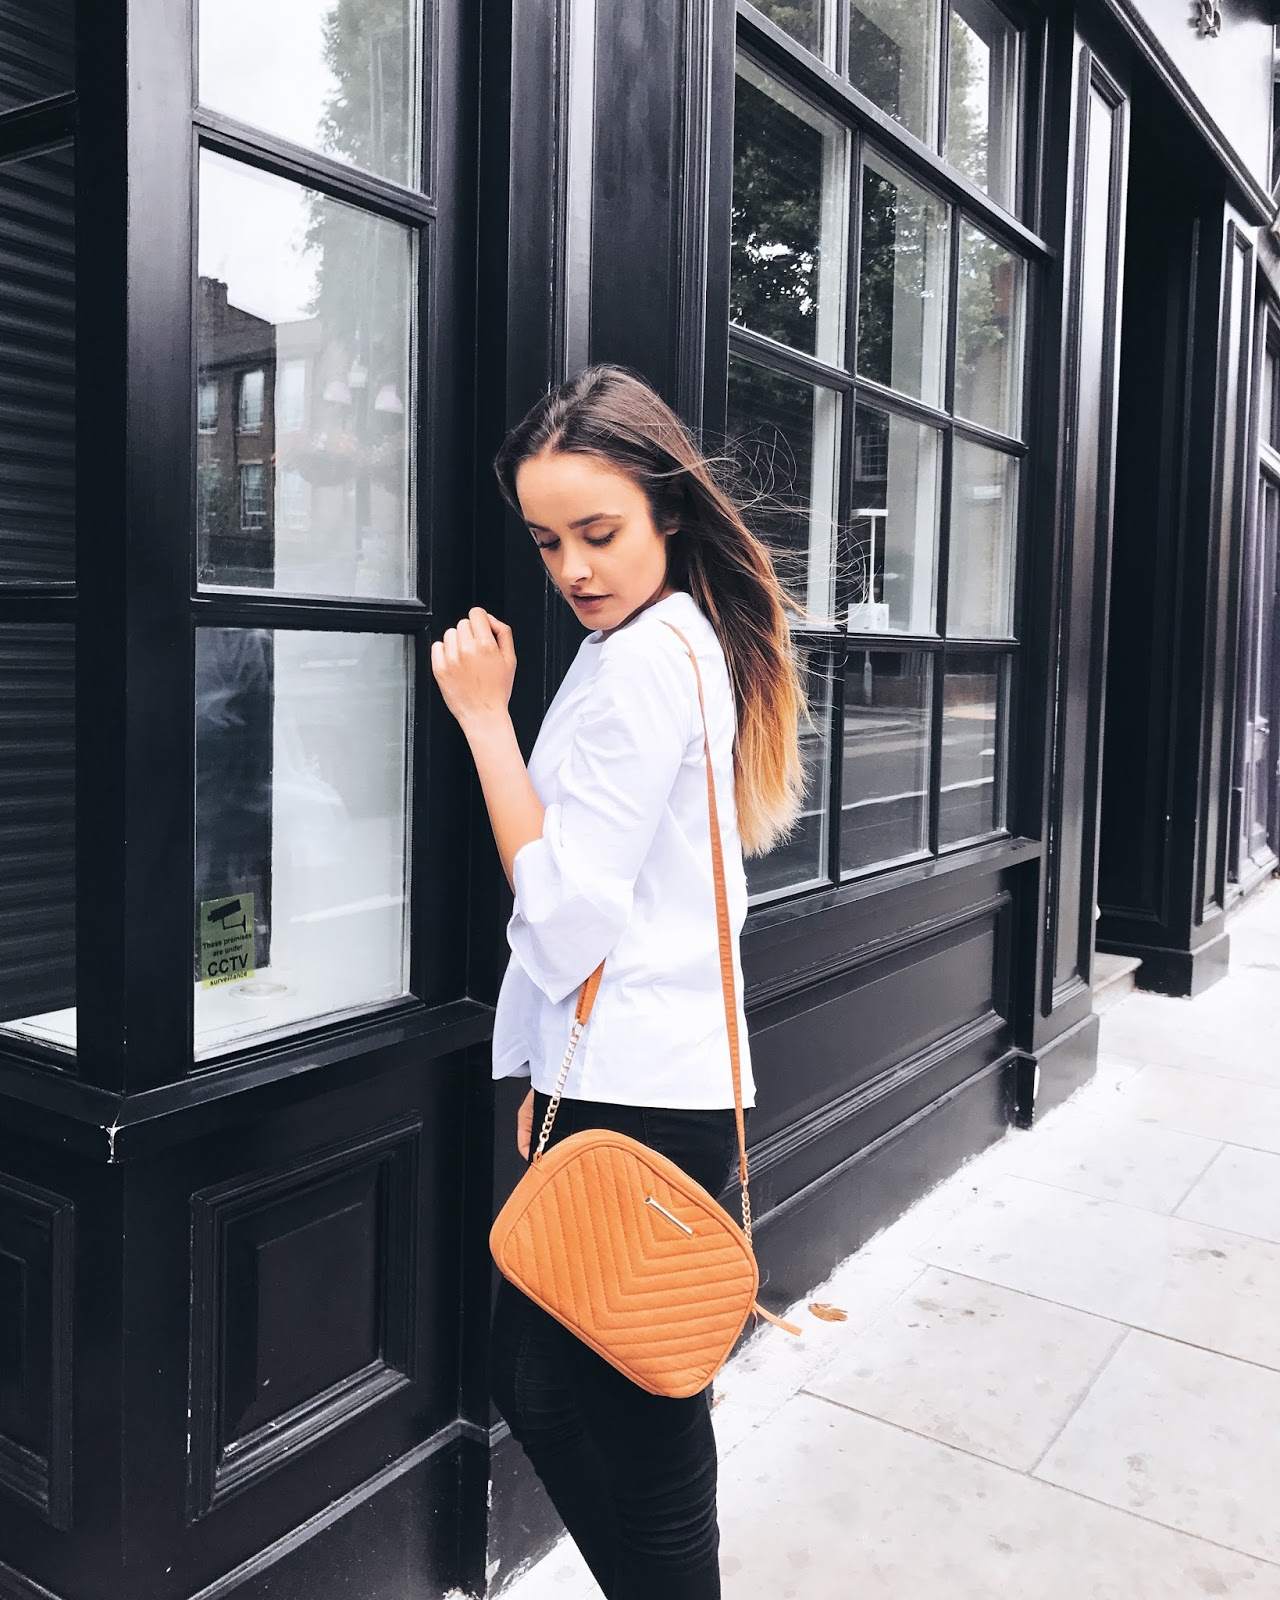 HOW TO LOOK STYLISH WITH A SMALL BUDGET